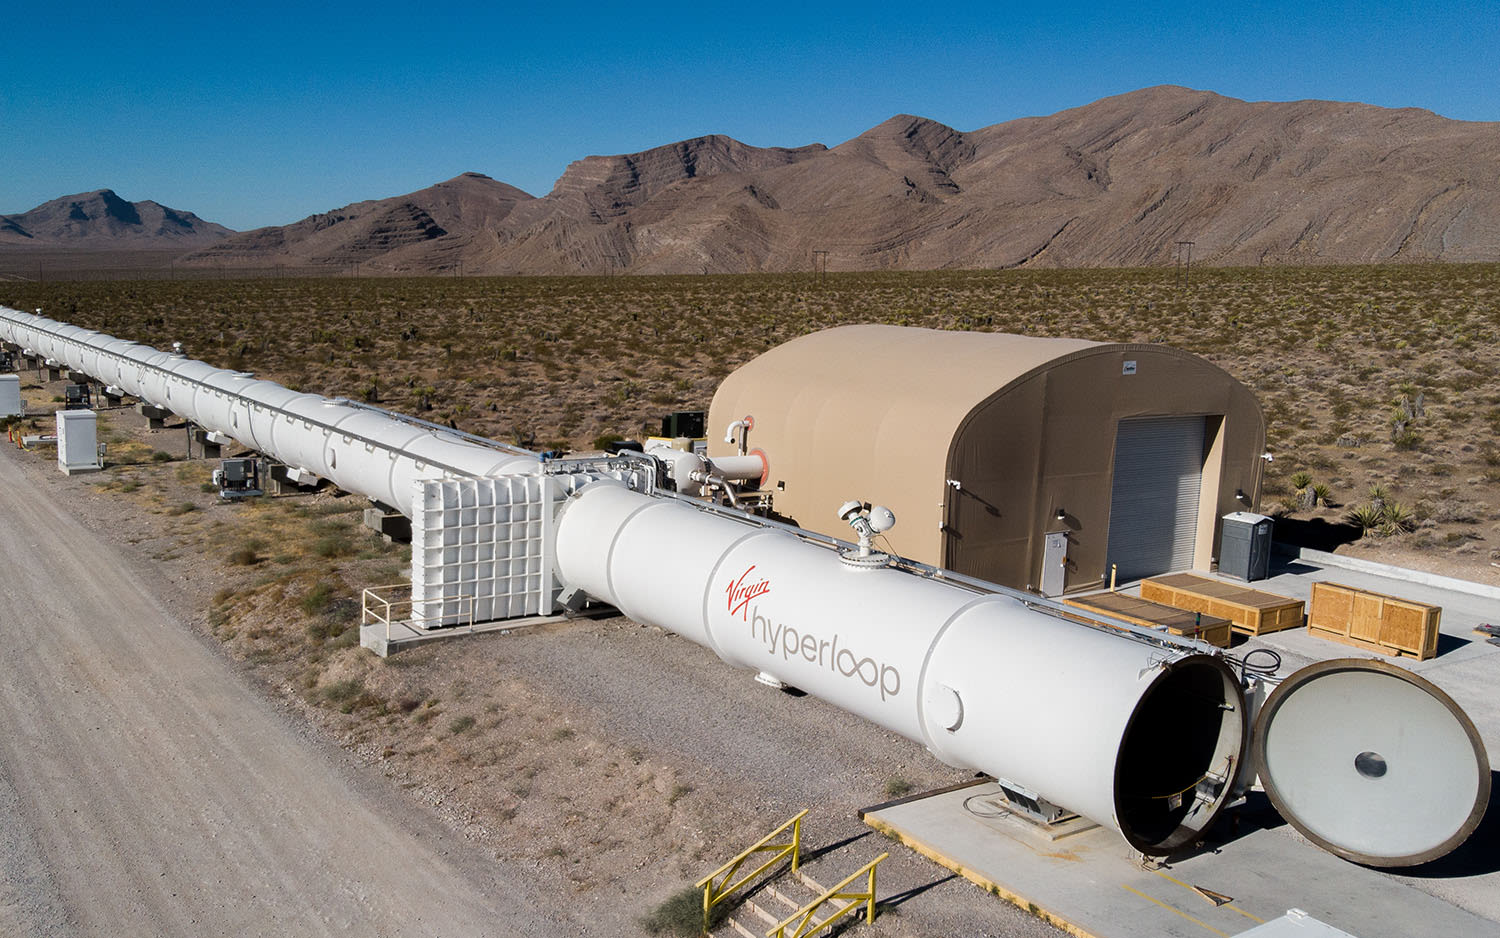 Virgin Hyperloop's DevLoop